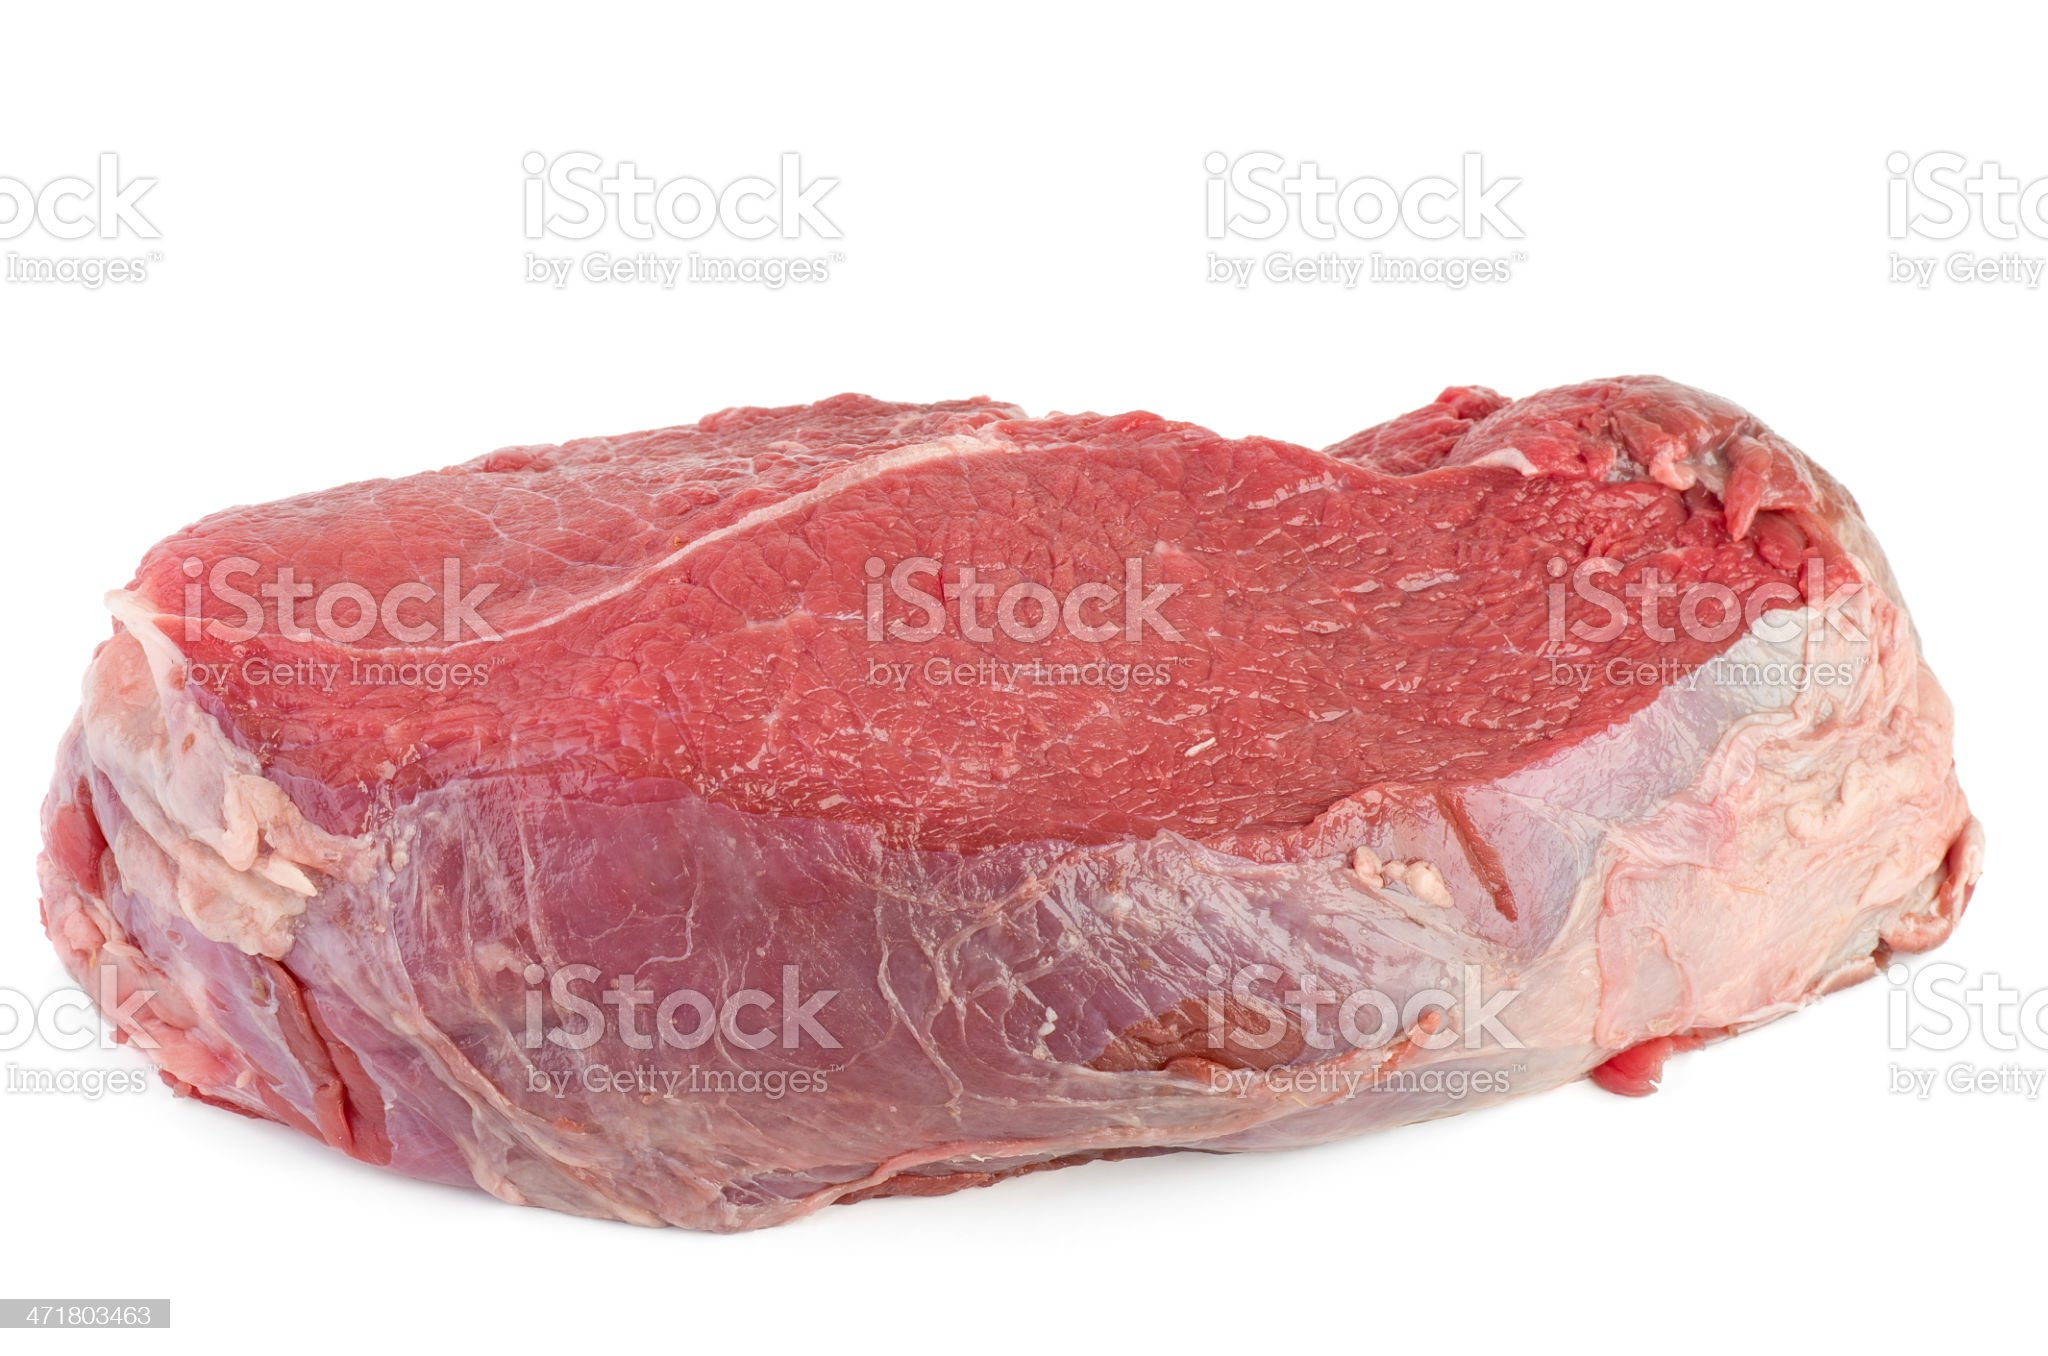 Raw veal slab royalty-free stock photo